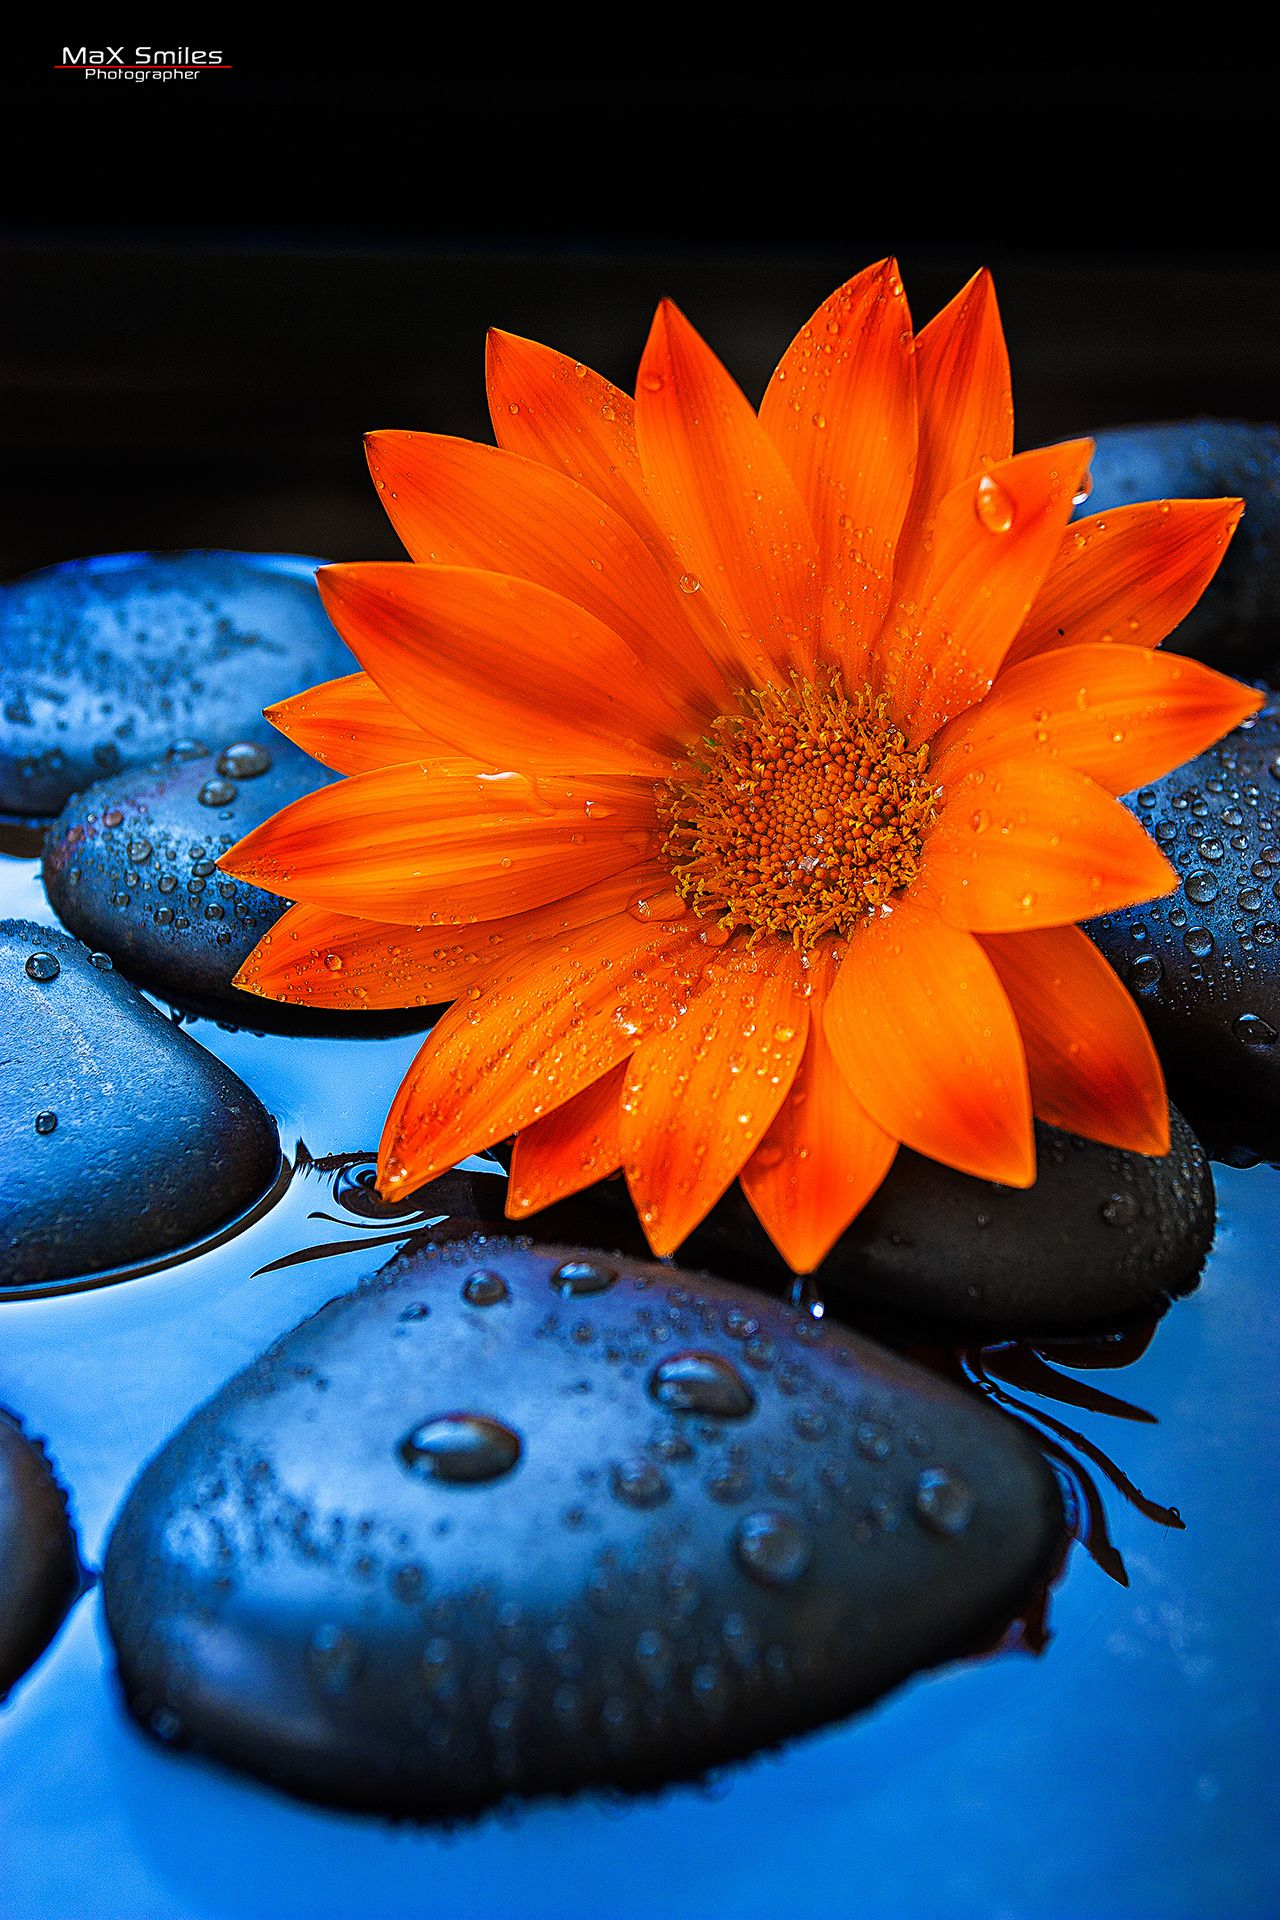 Flower 01 by MaX Smiles on 500px Orange aesthetic, Blue